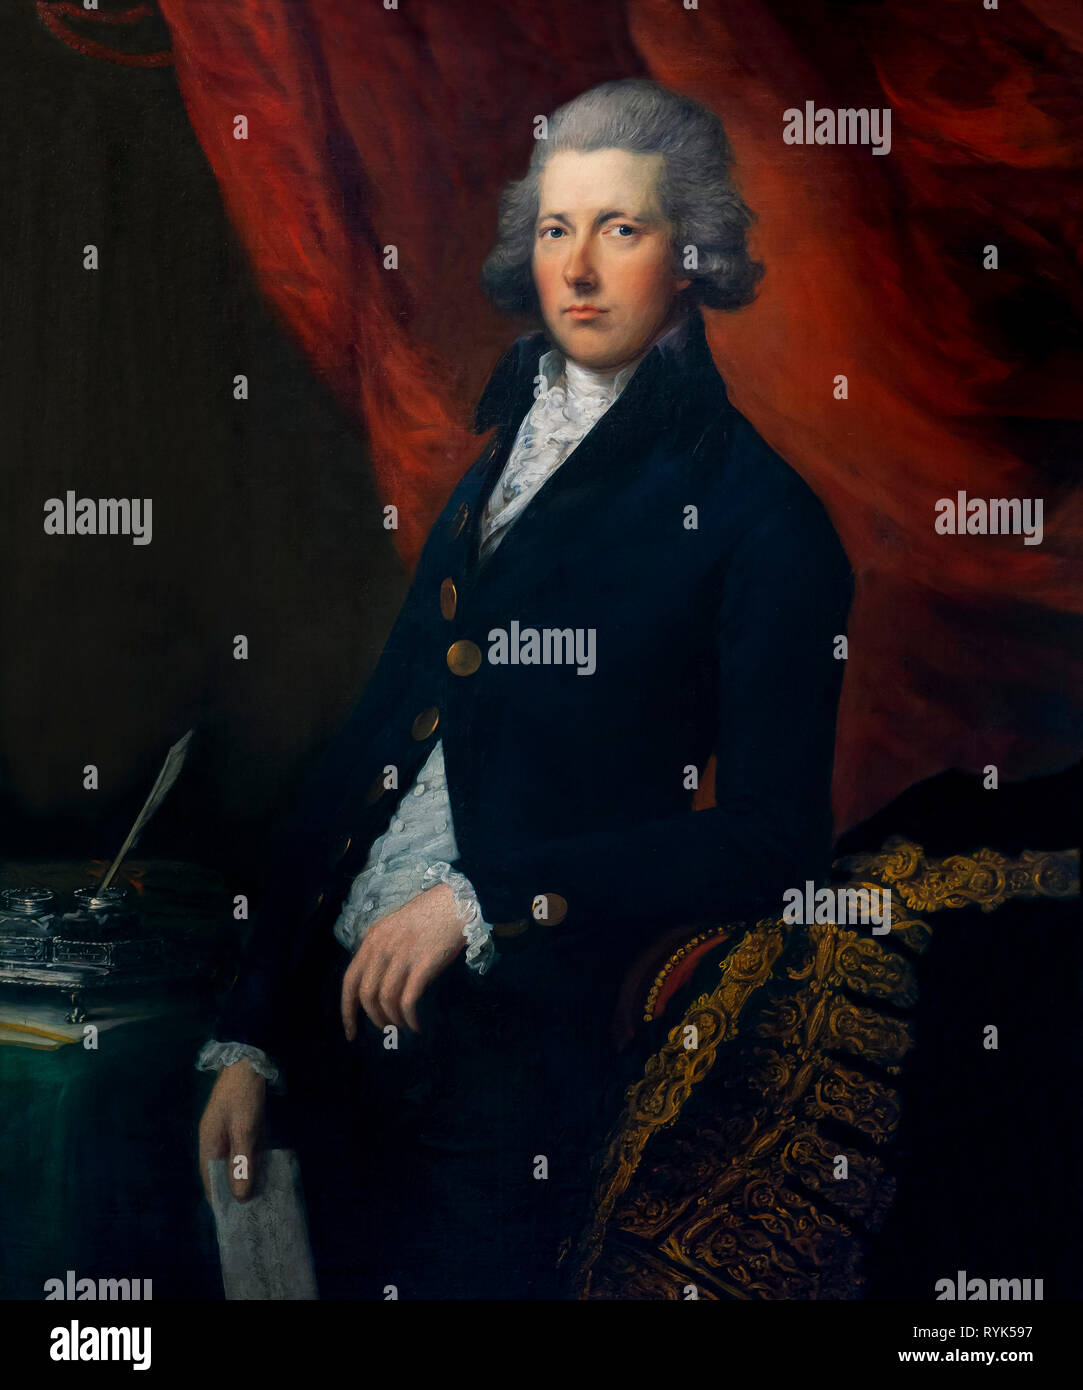 El Muy Honorable William Pitt el Joven, Dupont, Gainsborough y Thomas Gainsborough, circa 1787-1790, Imagen De Stock